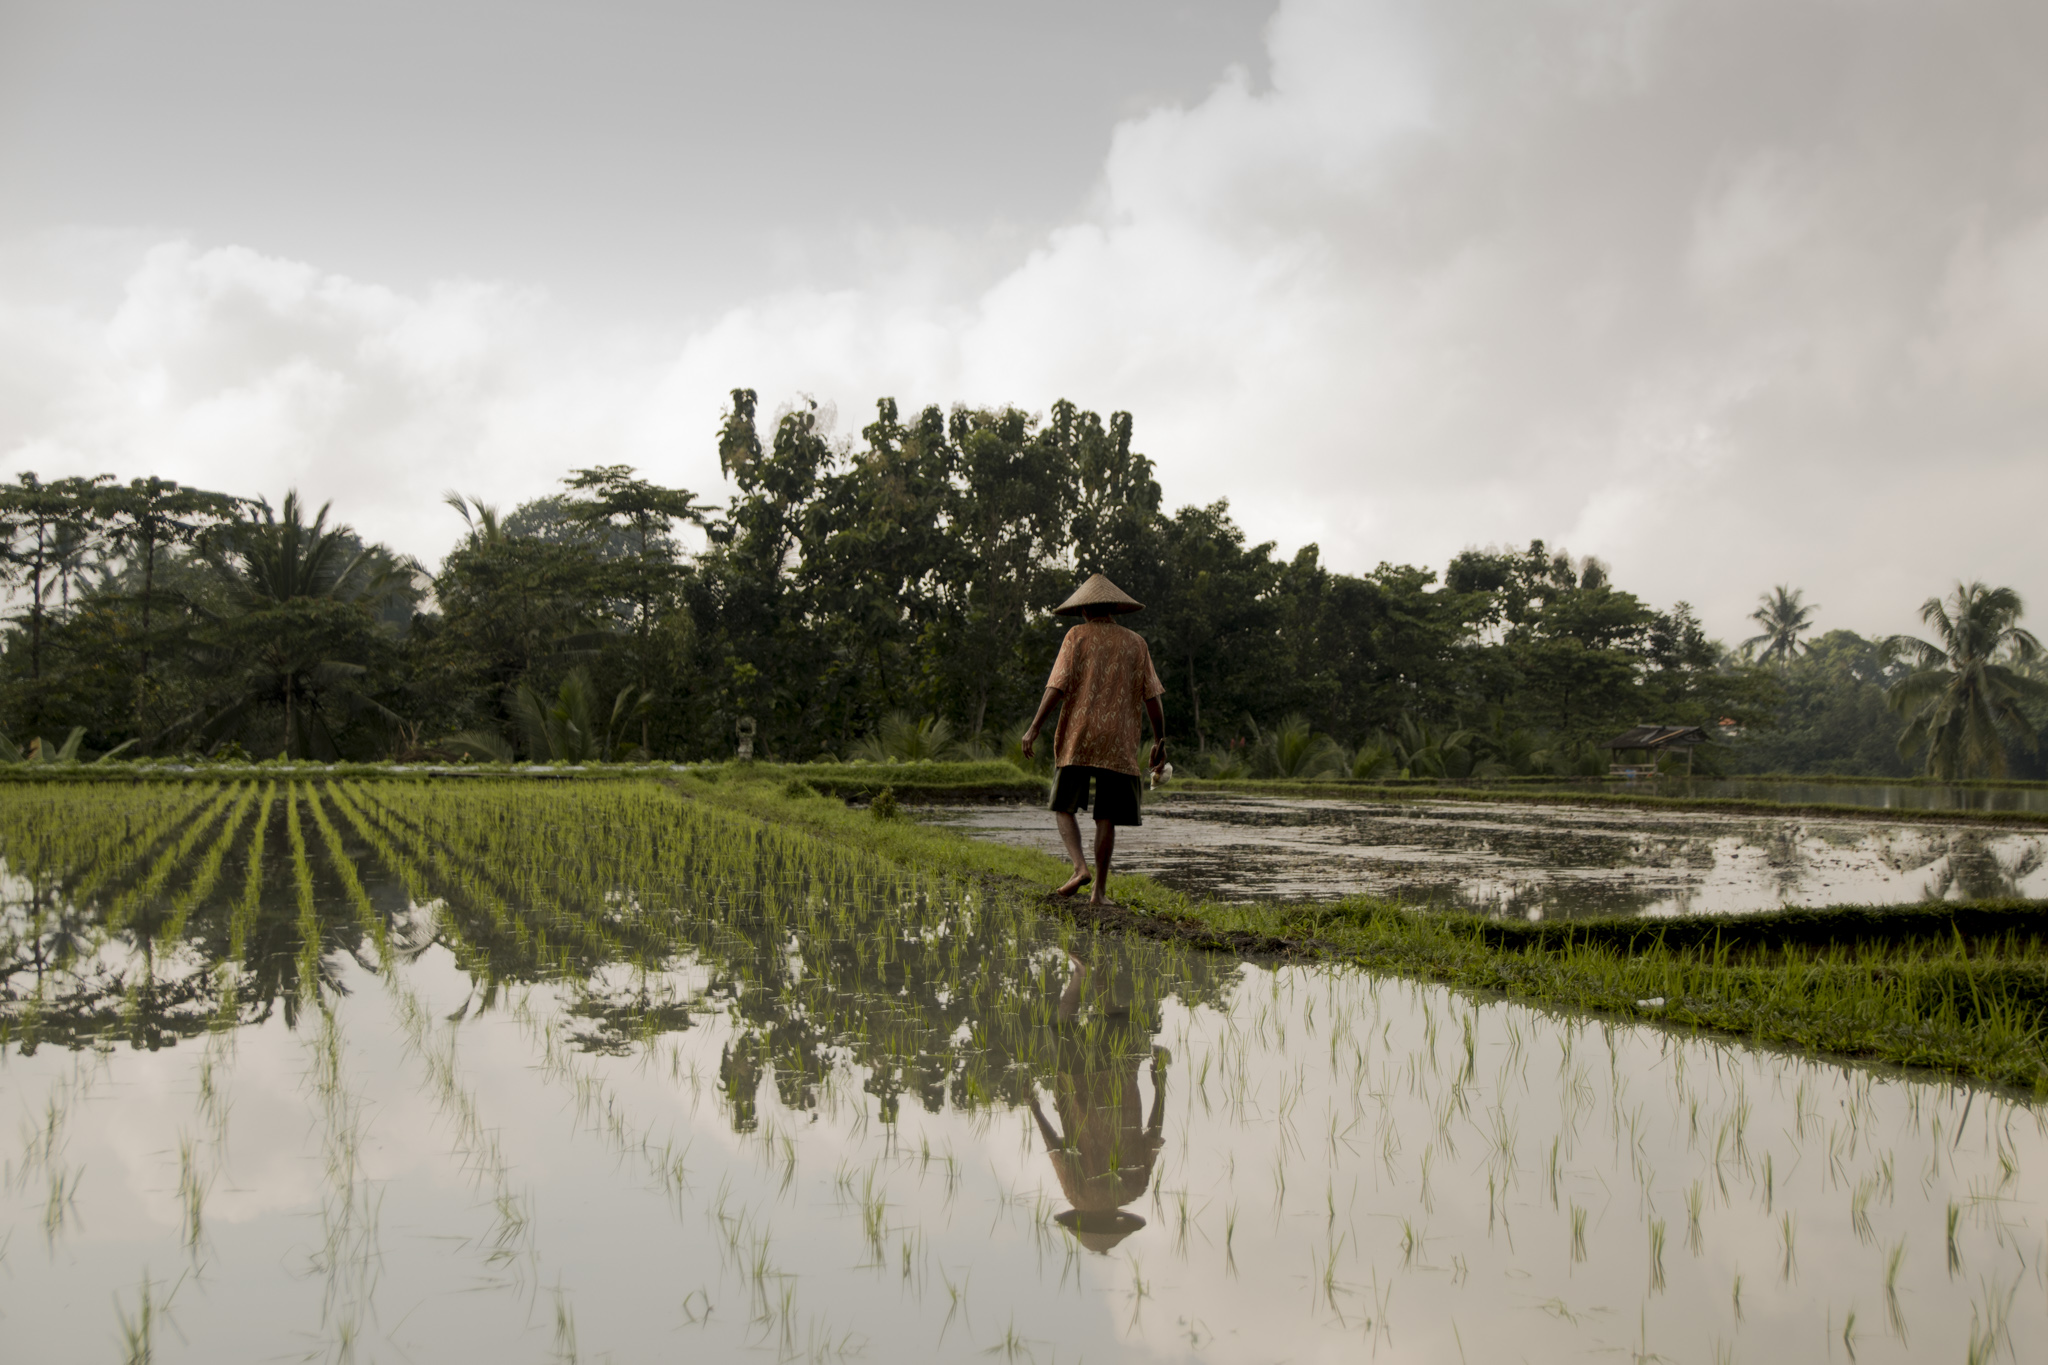 A farmer strolls amongst the rice fields early in the morning.